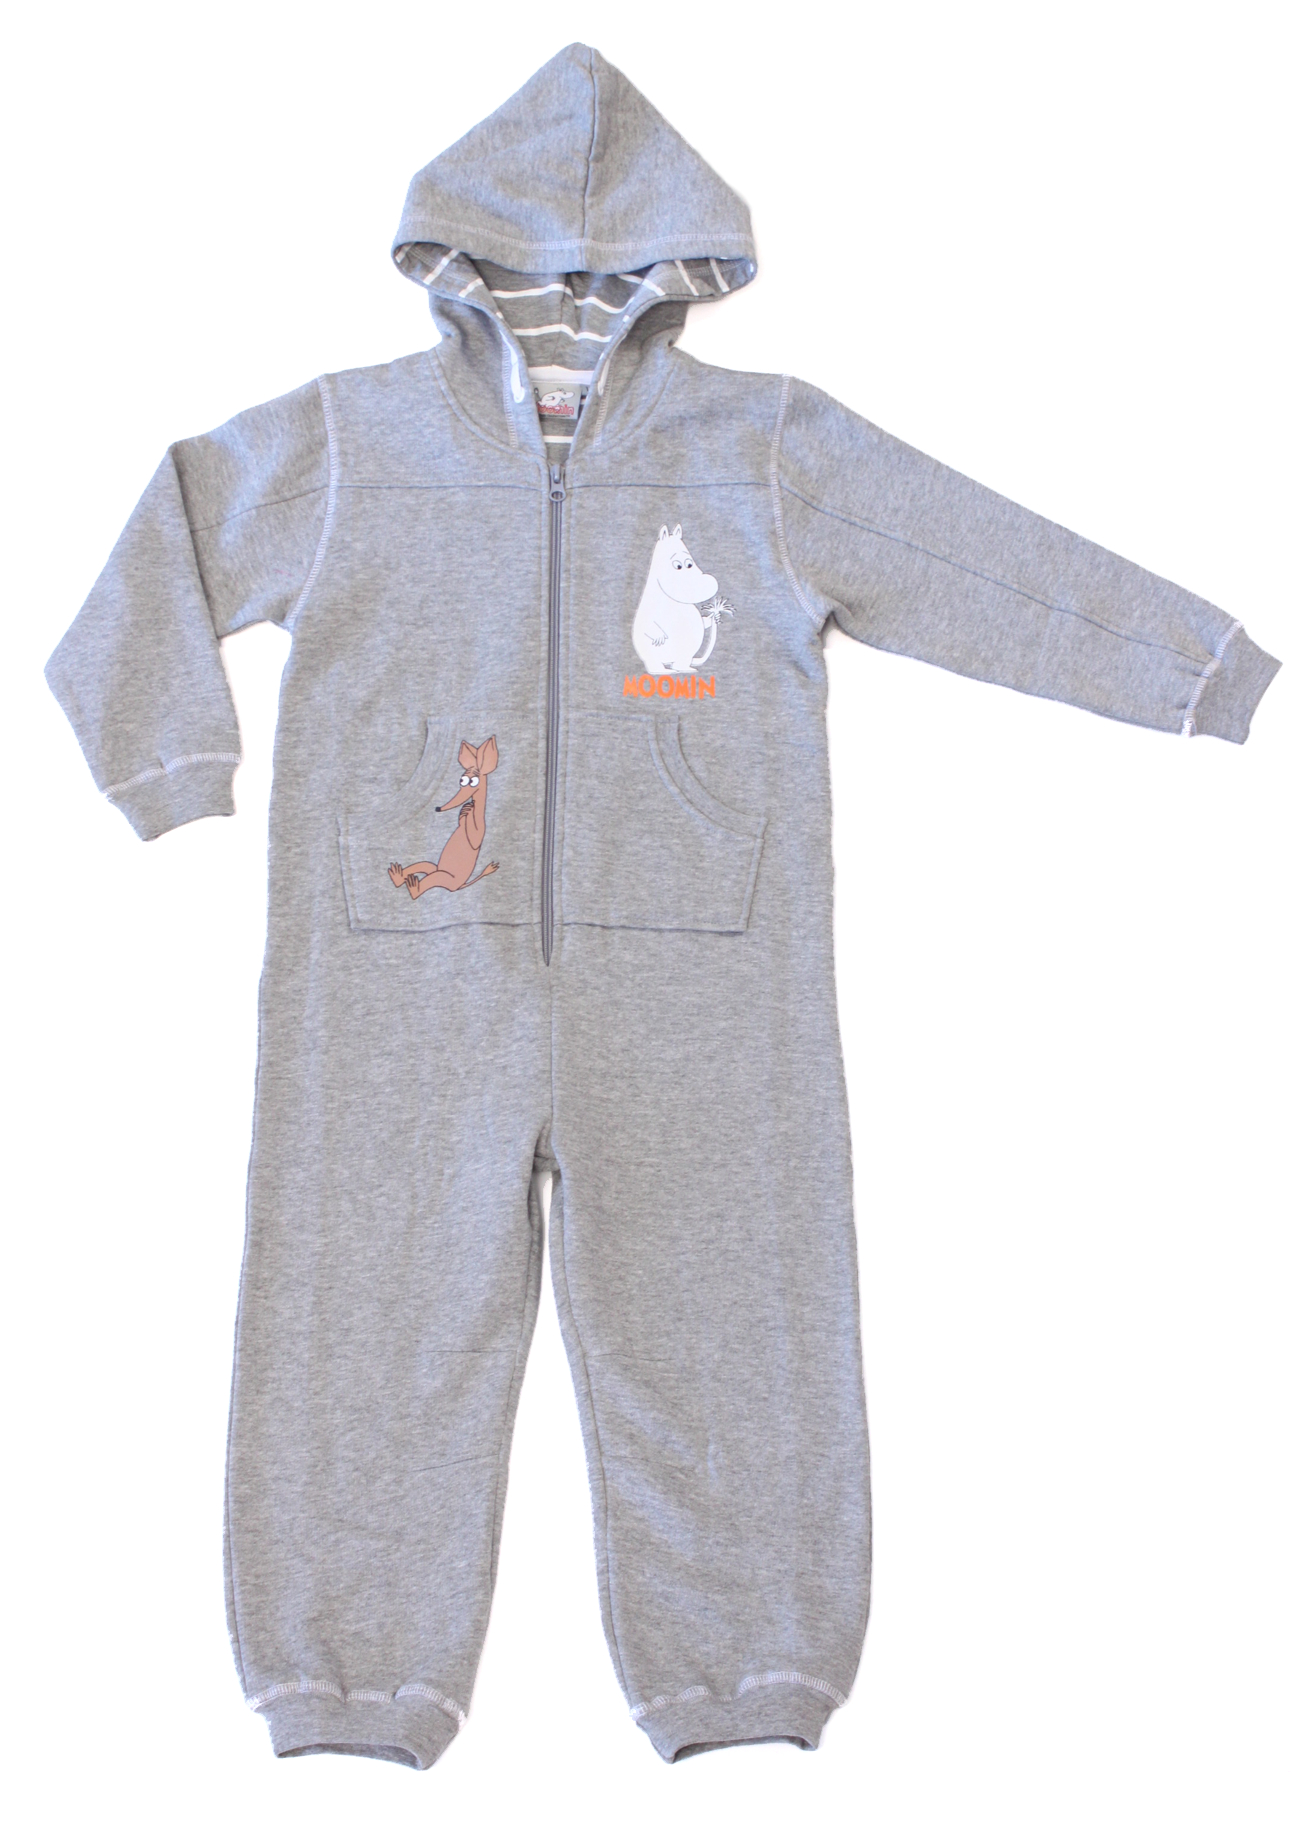 Nipeco college overall grey